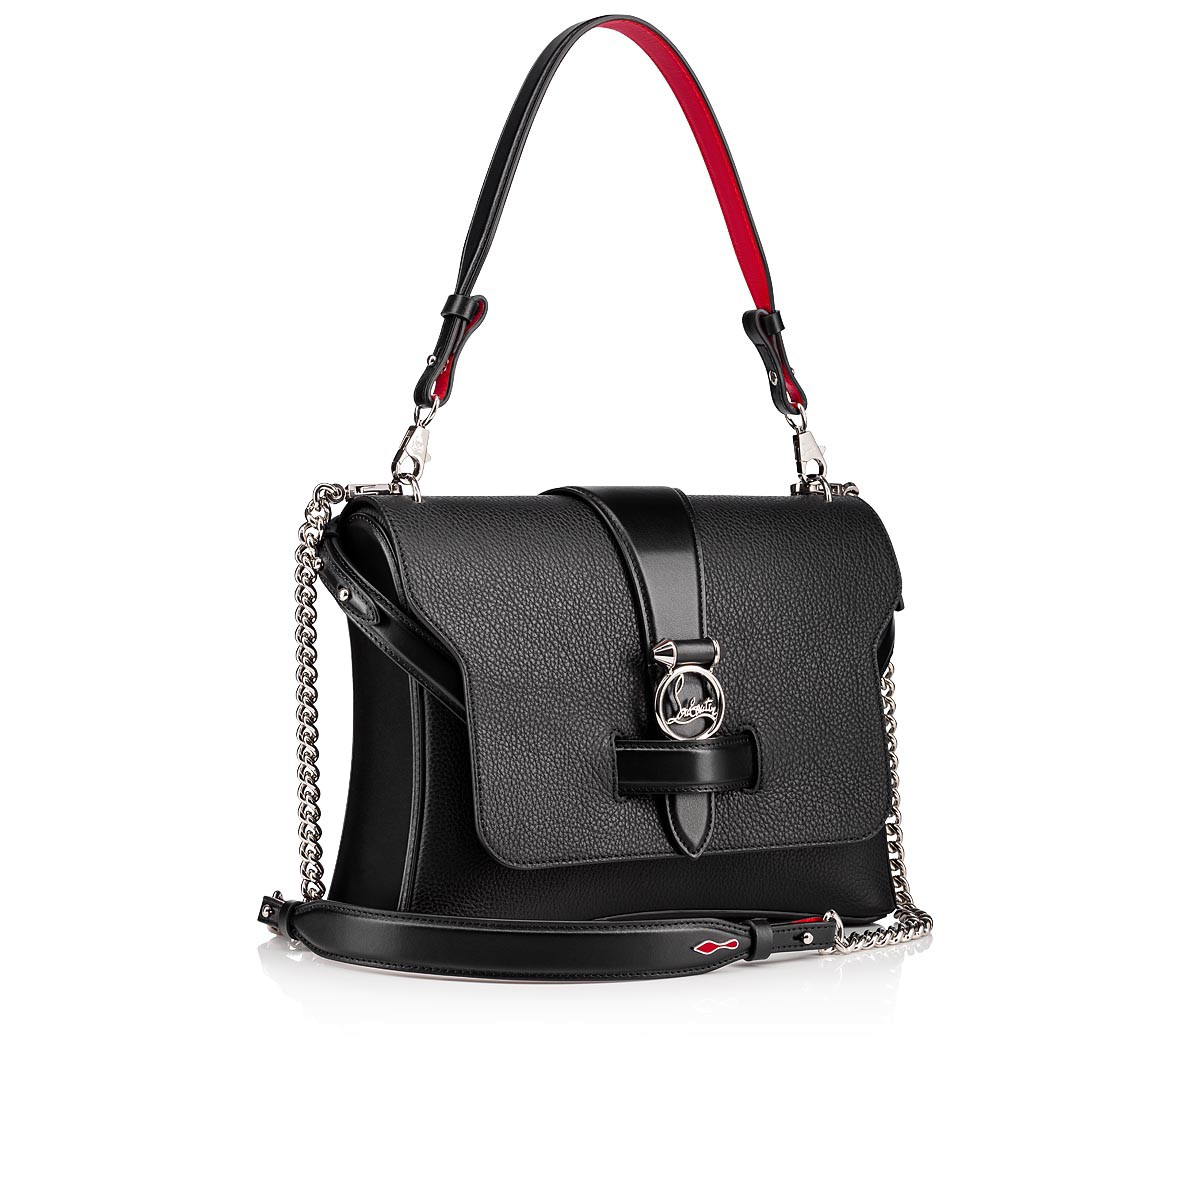 Bags - Rubylou Meduim - Christian Louboutin